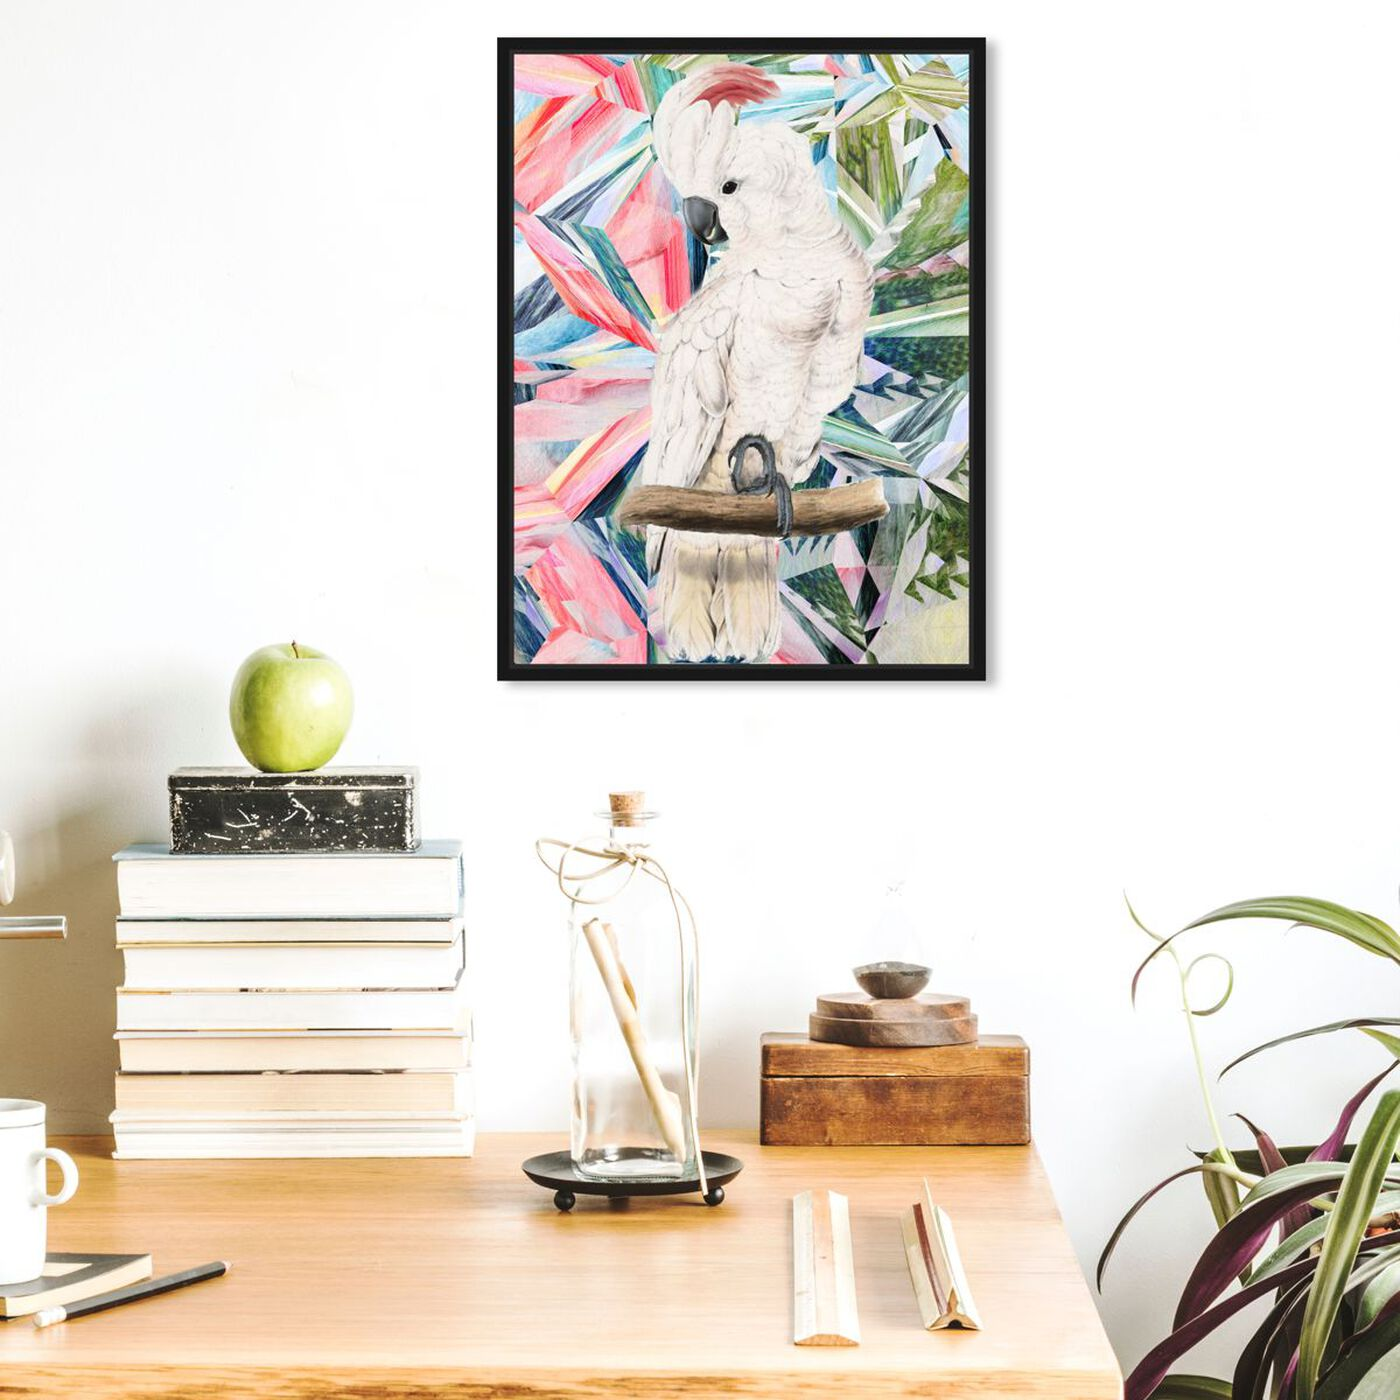 Hanging view of Modern Cockatoo featuring animals and birds art.